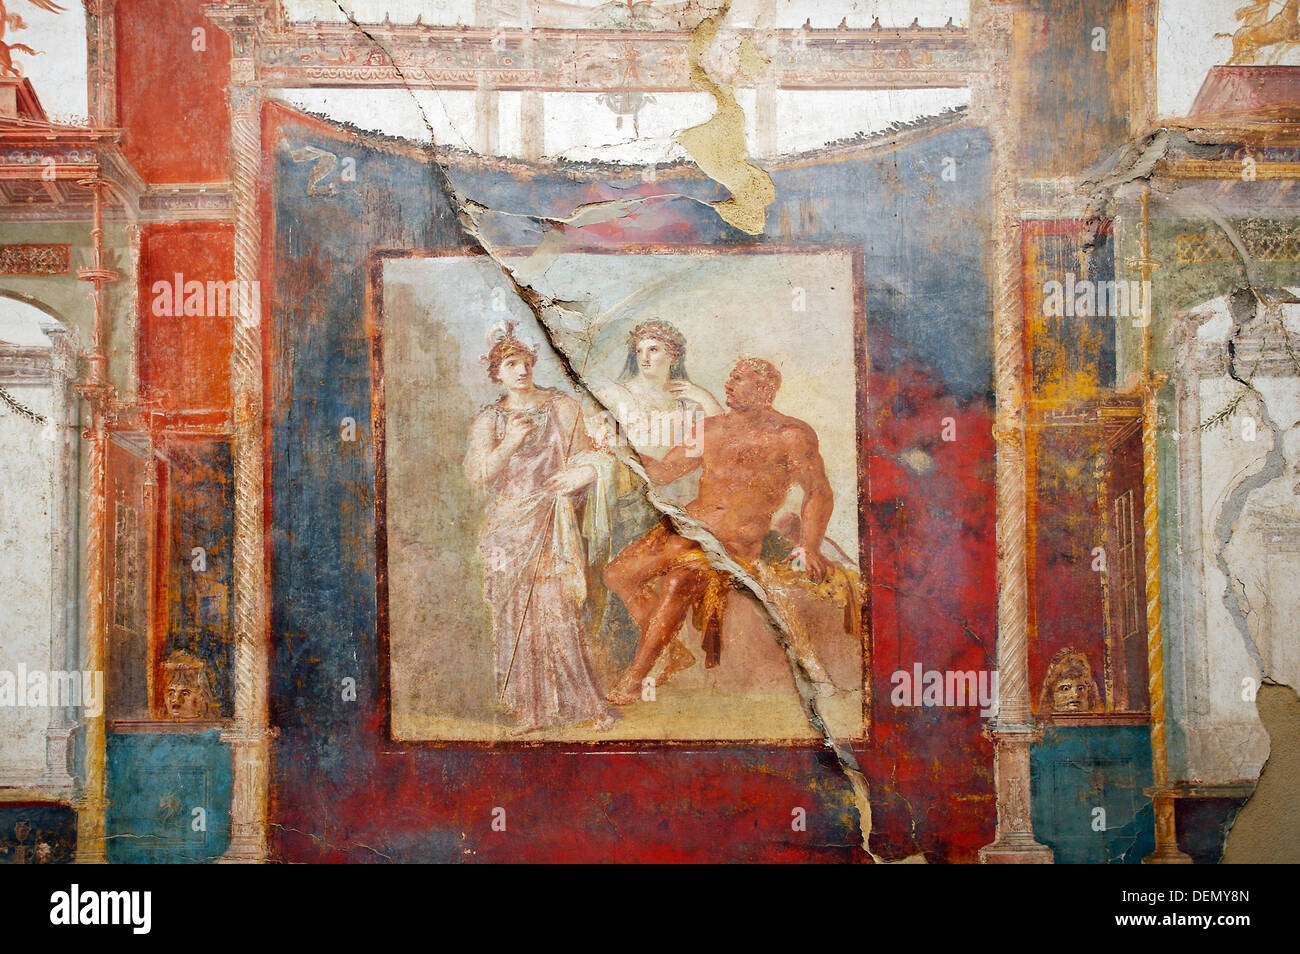 Fresco in the College of the Augustans« depicting the myth of Hercules, ruins of the old Roman city of Herculaneum  Italy. - Stock Image